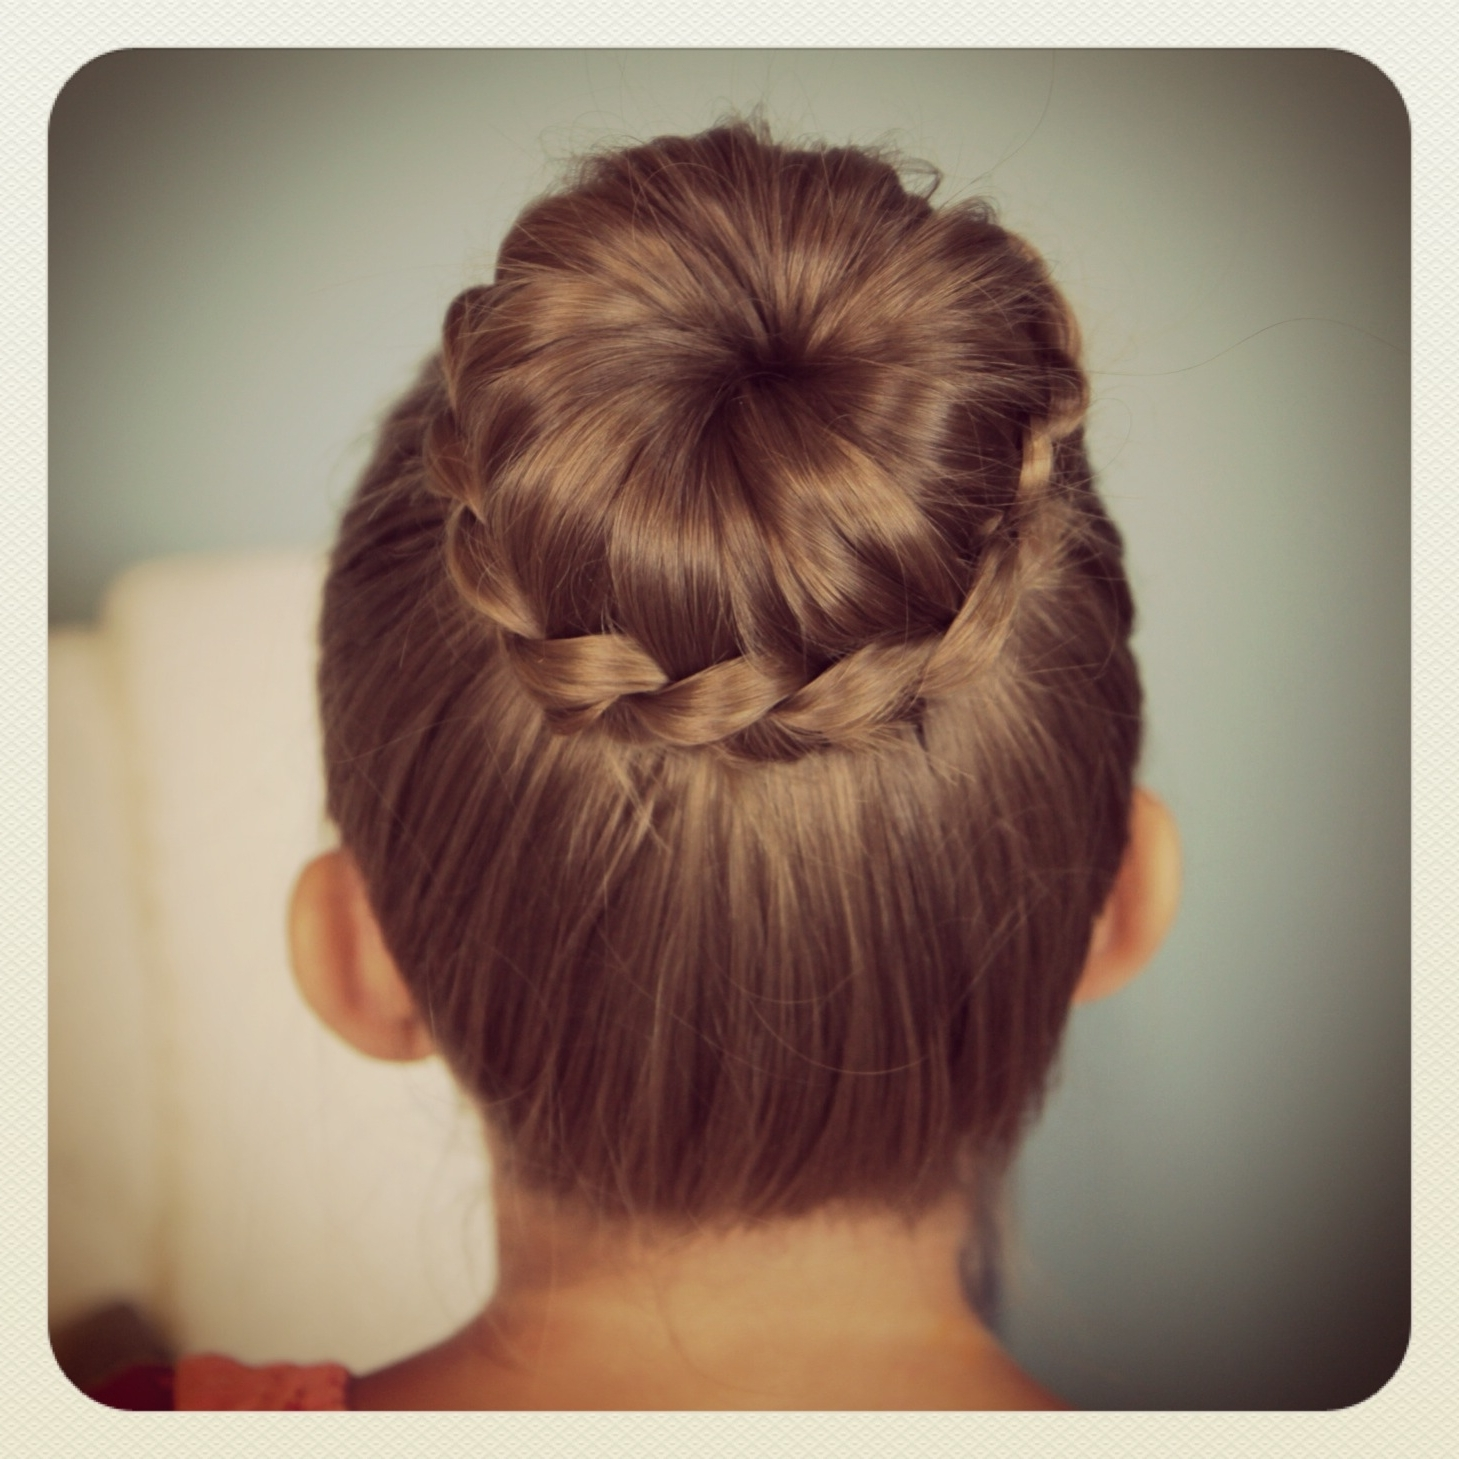 Cute Back To School Hair Cuts | Lace Braided Bun | Cute Updo With Regard To Easy Updo Hairstyles For Kids (Gallery 2 of 15)